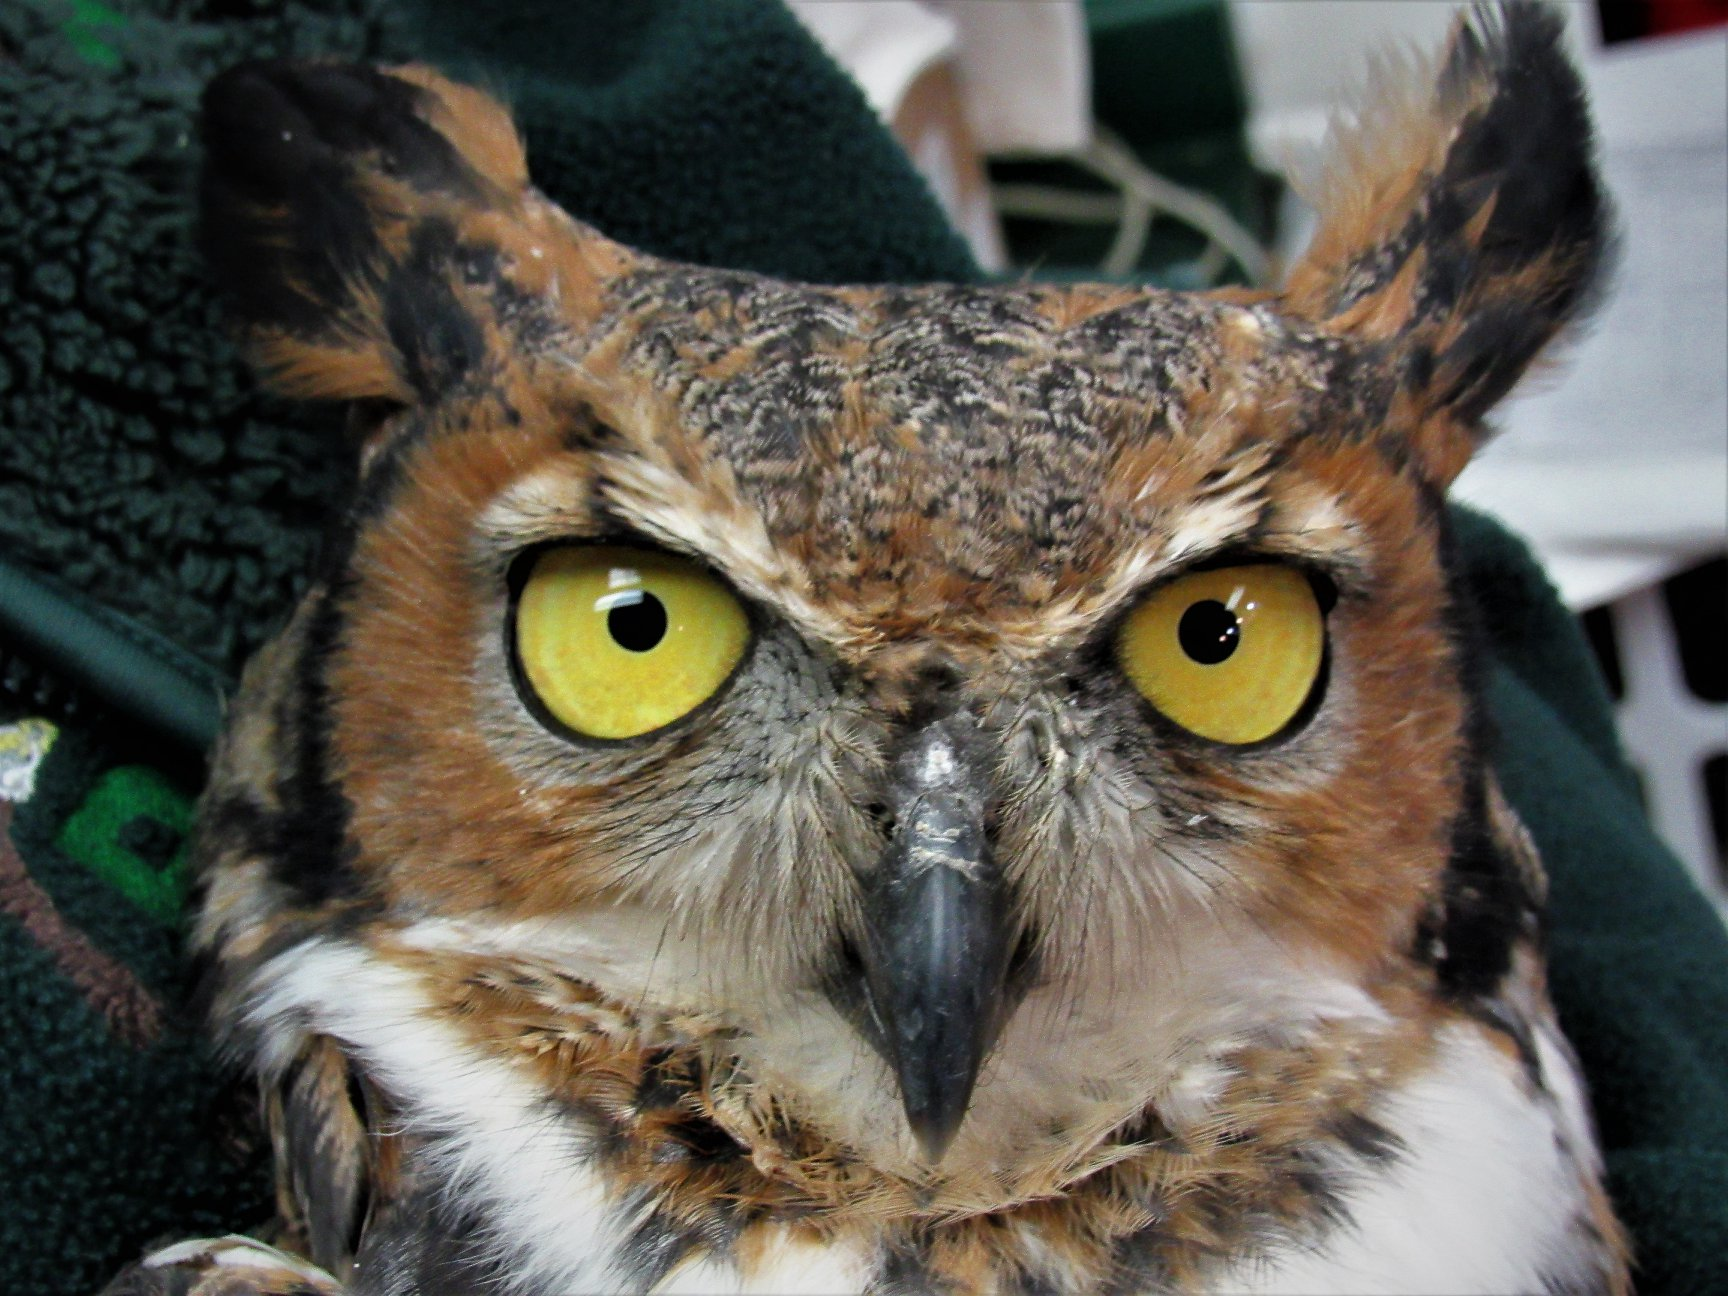 This handsome Great-horned Owl was minutes away from freedom in this photo.